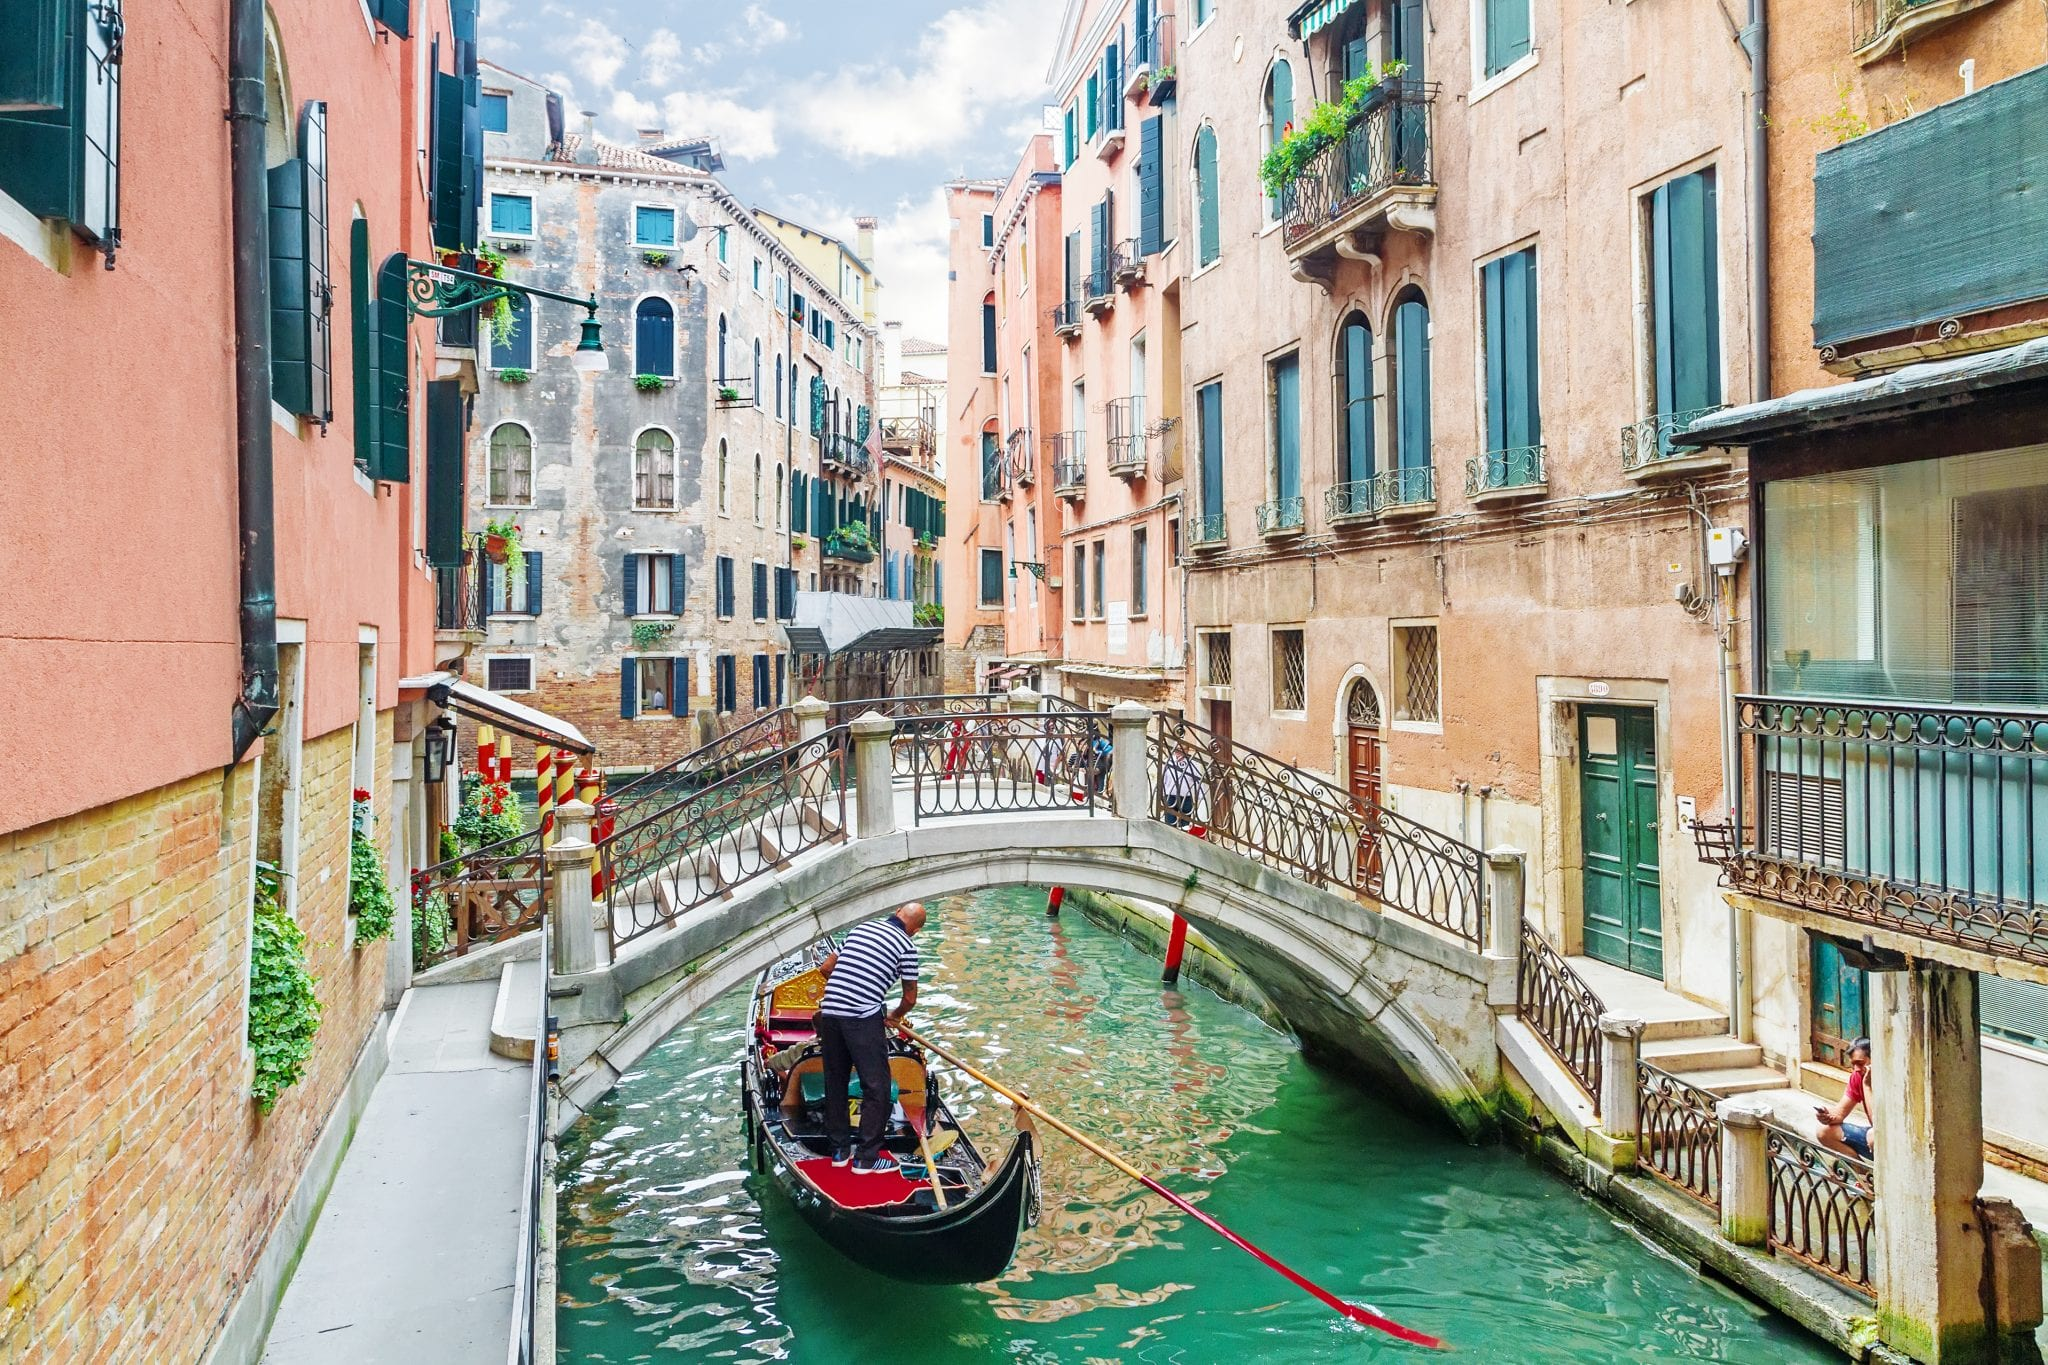 venetian canal with a gondola passing under a bridge. one of the fun facts about venice italy is that there are far fewer gondolas now than in the past